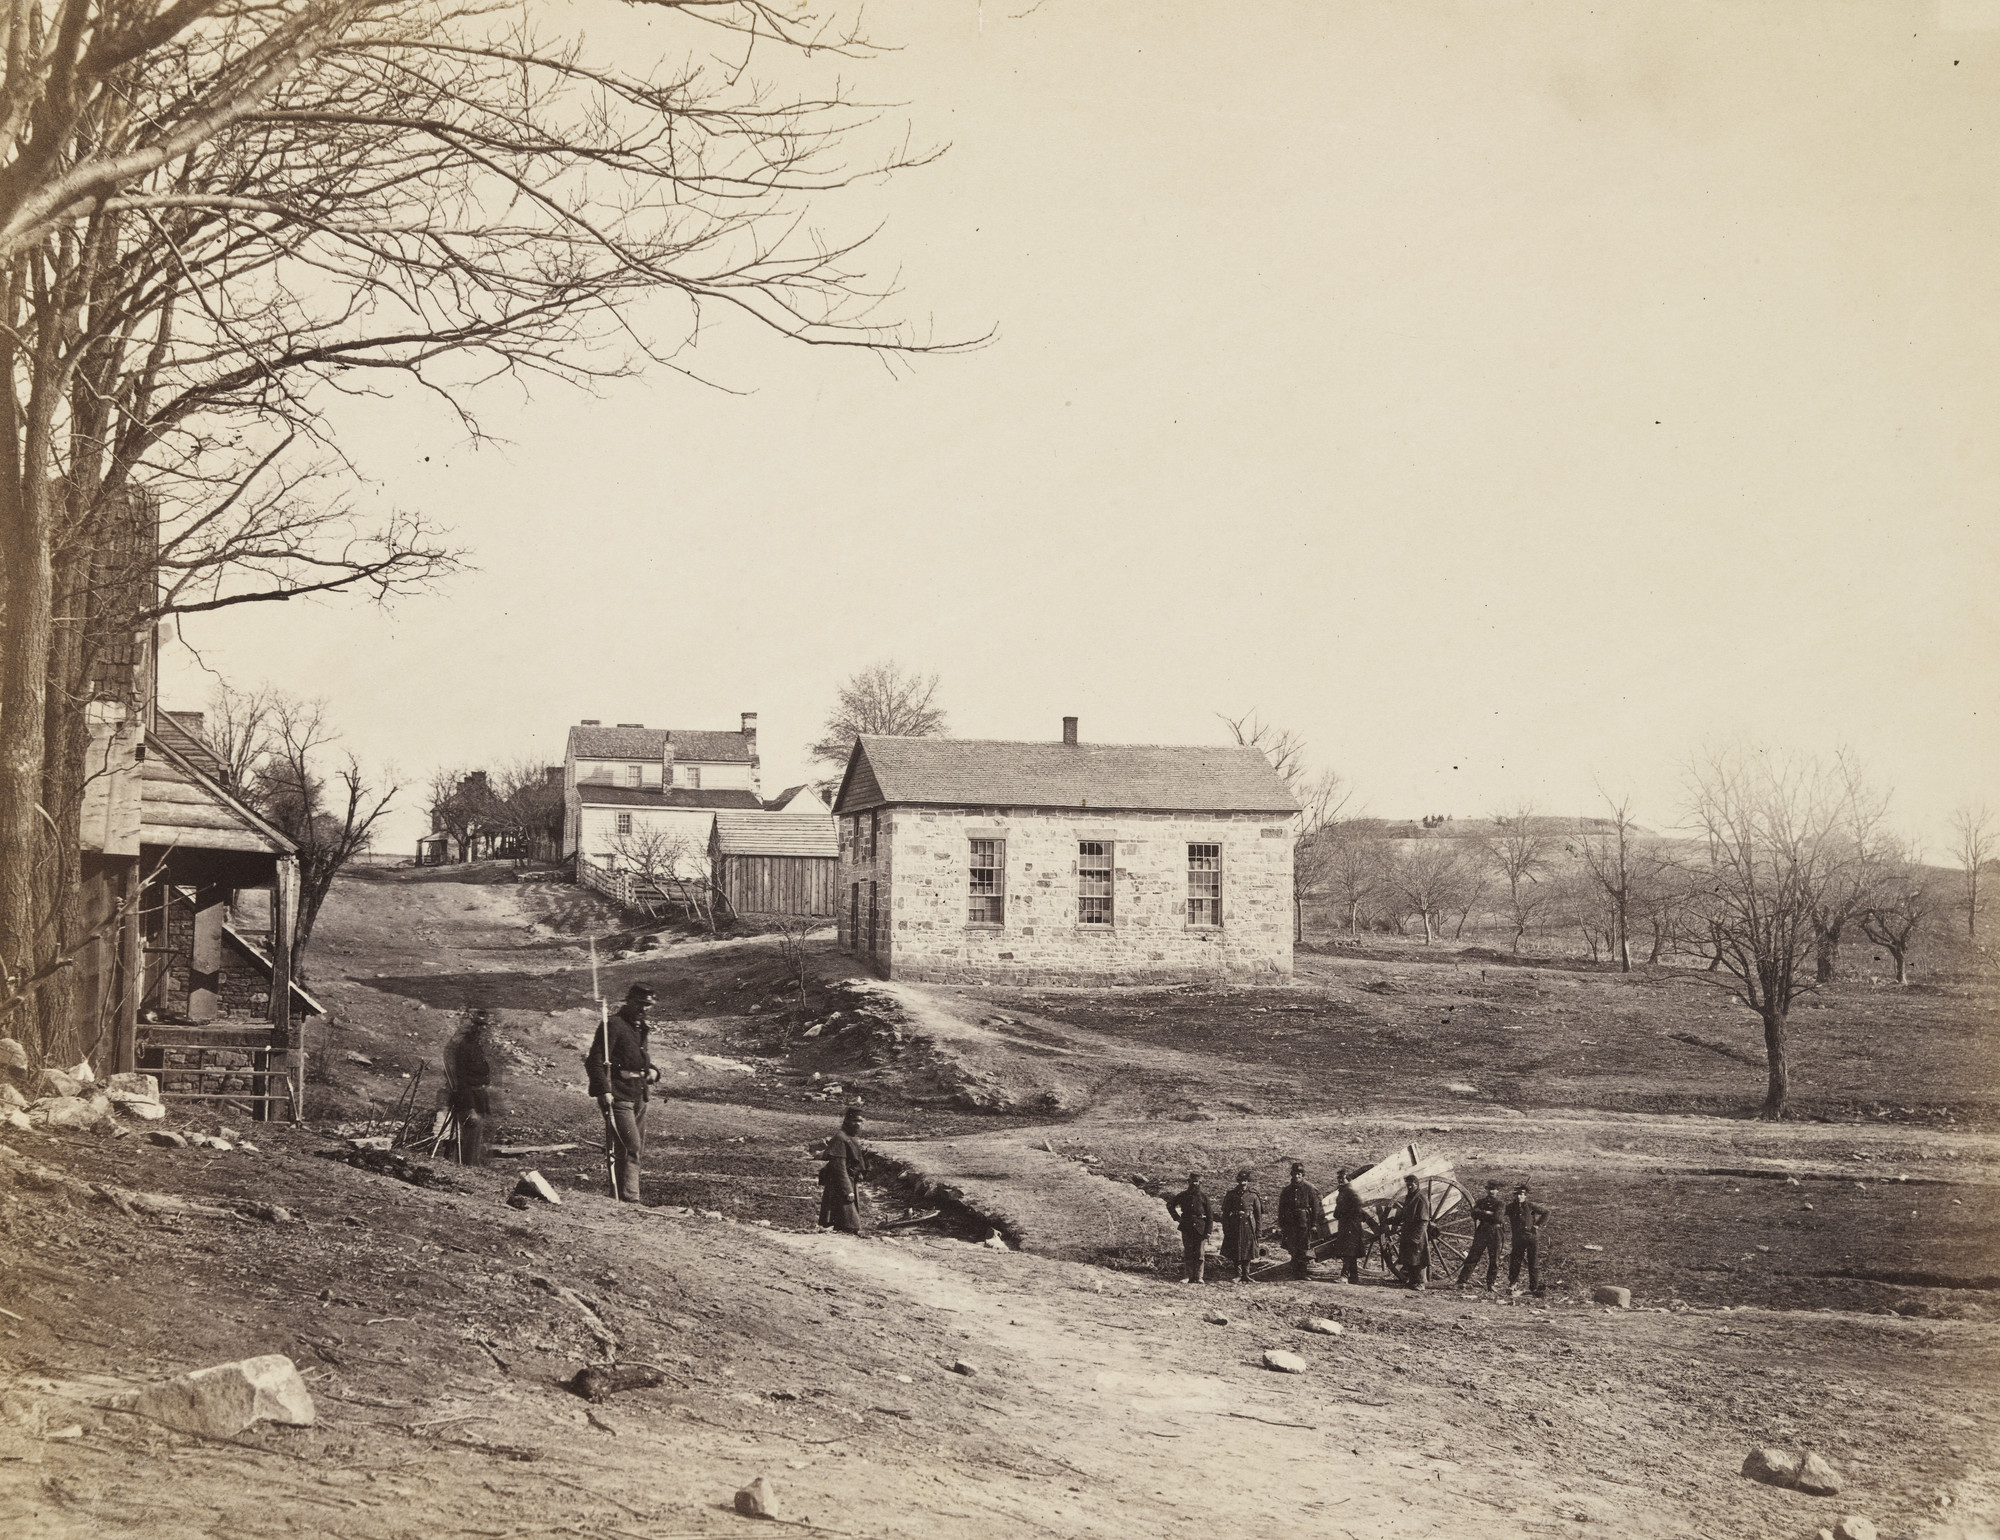 Alexander Gardner. Stone Church, Centreville, Virginia. March 1862